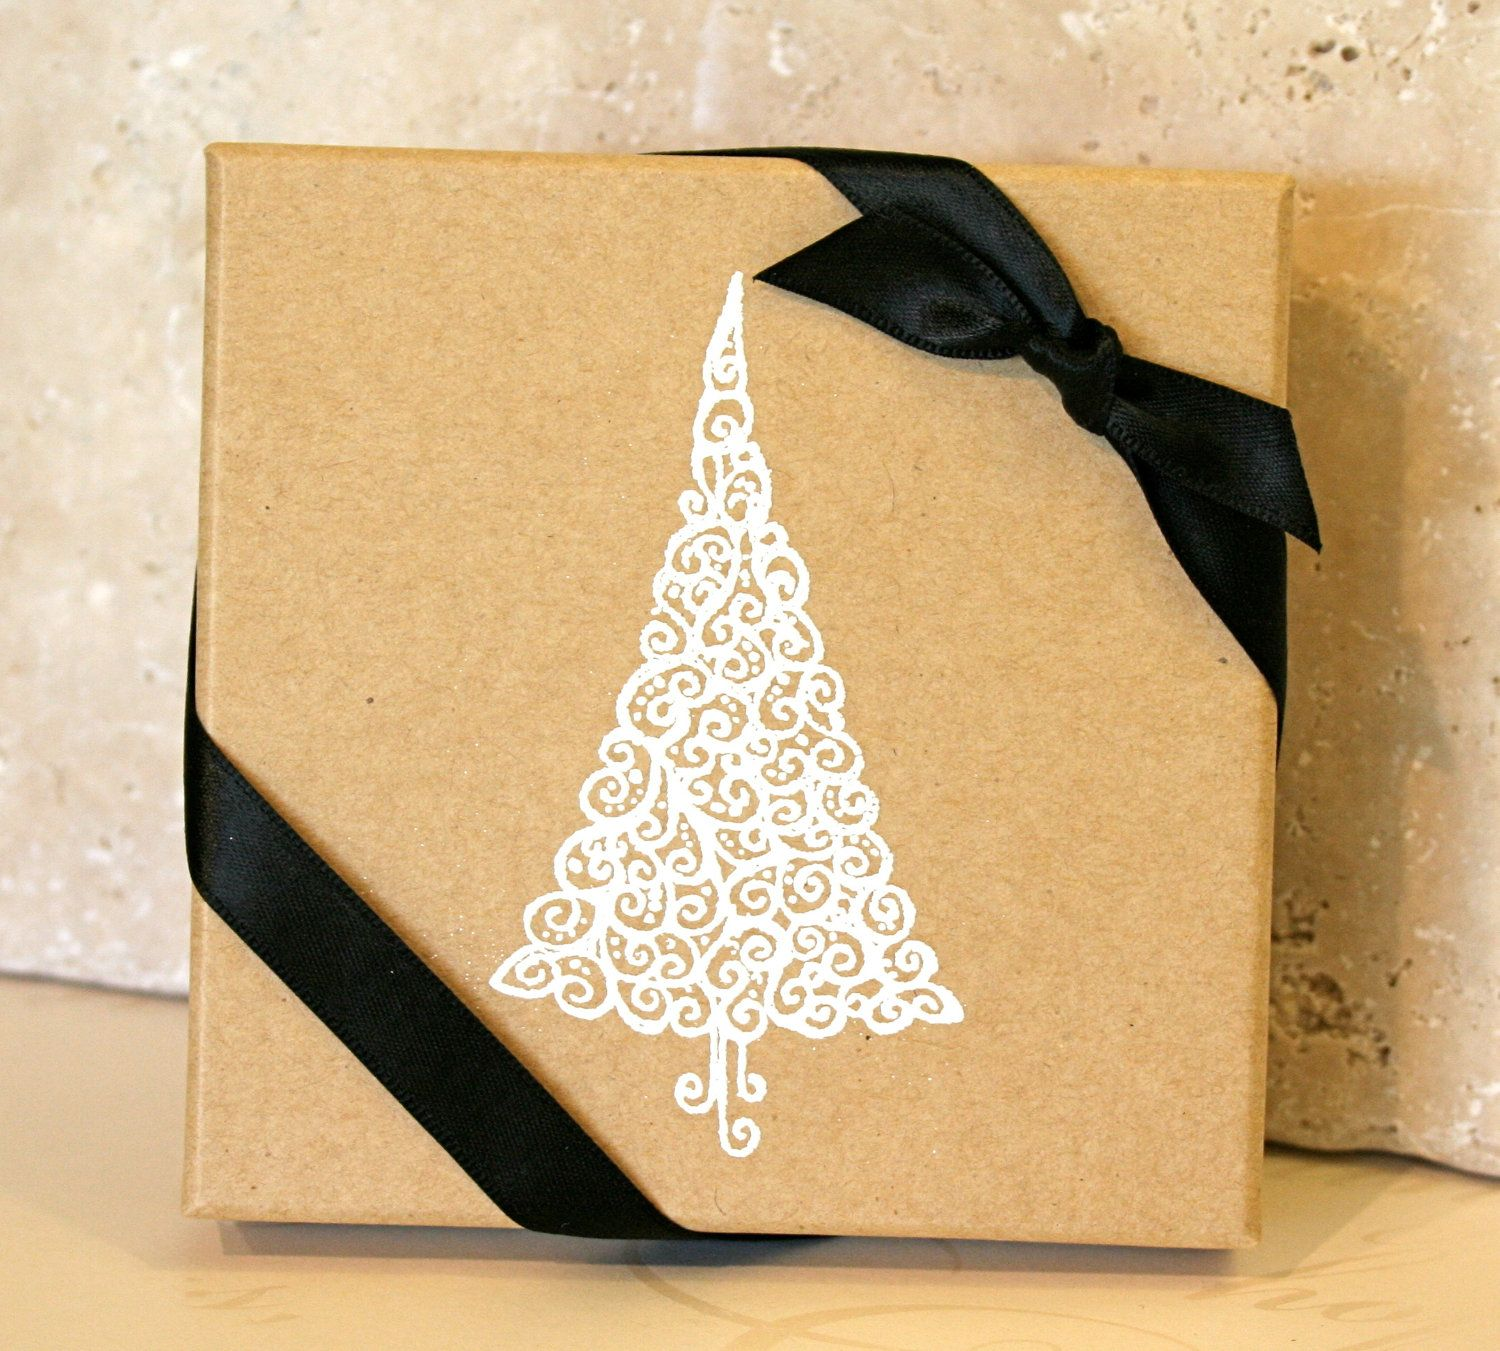 Holiday Gift Box Embossed Gift Boxes Paper Gift Box Jewelry Etsy In 2020 Holiday Gift Box Paper Gift Box Gifts